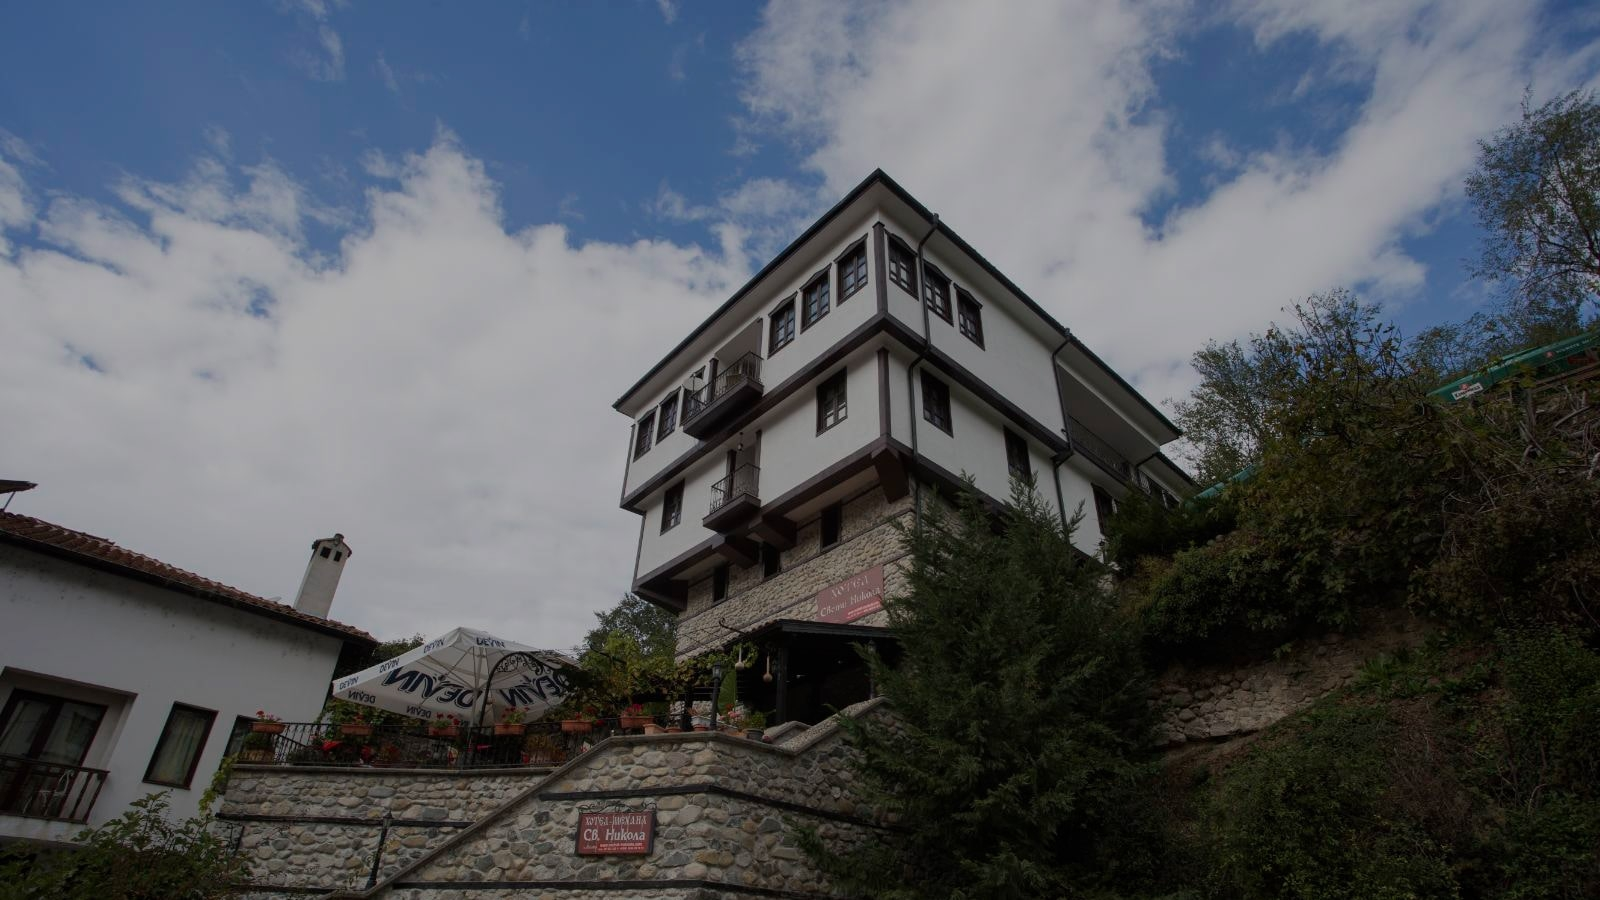 Family Hotel<br> in Melnik, Bulgaria